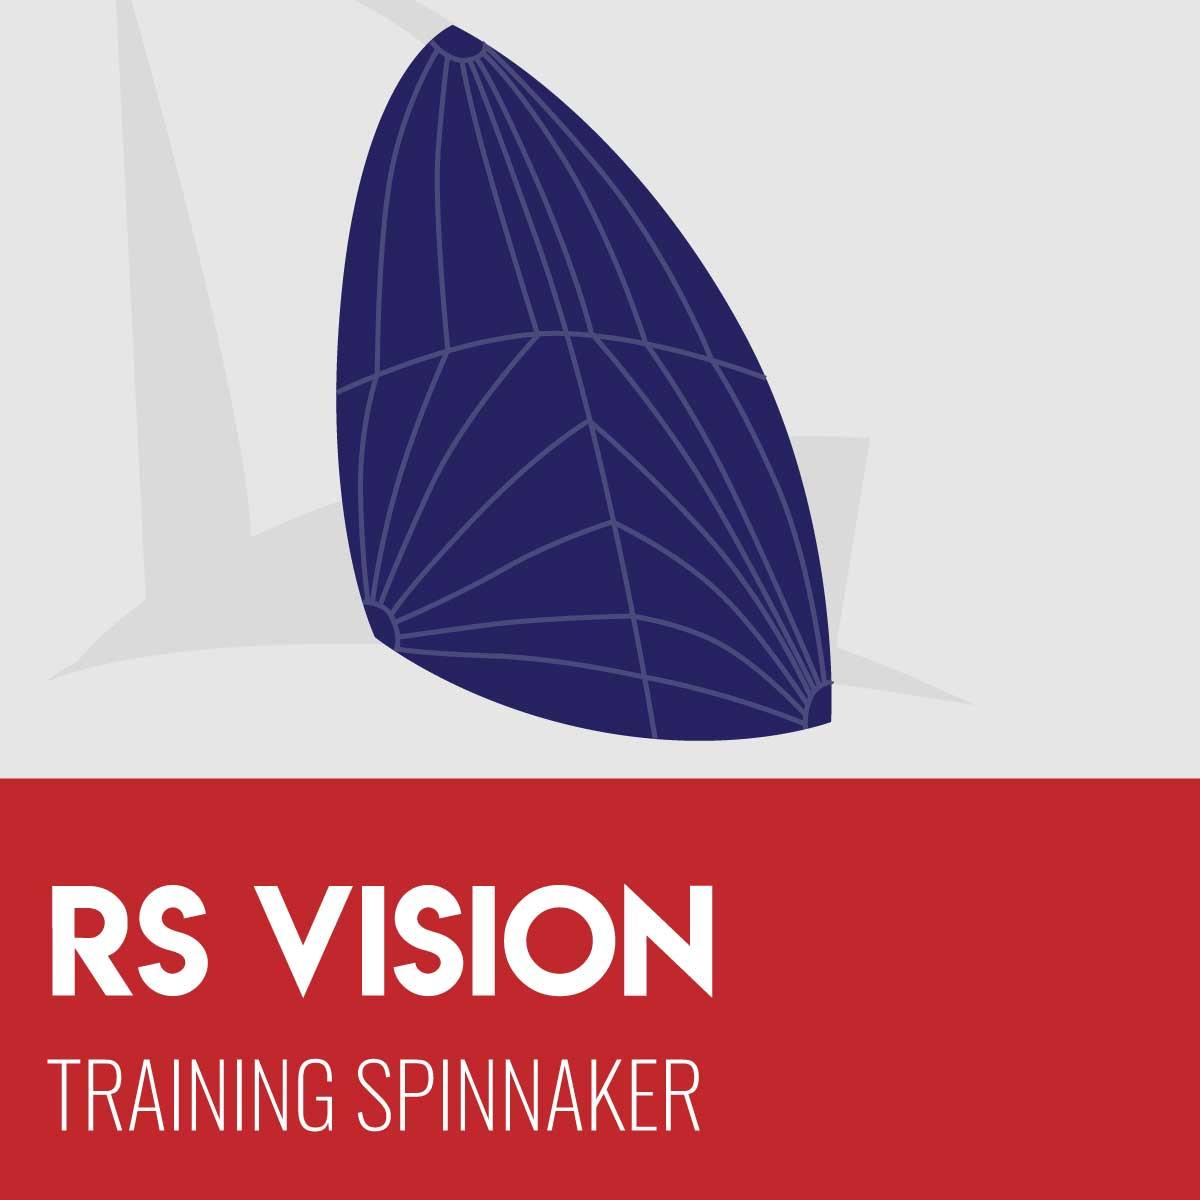 RS Vision Training Spinnaker